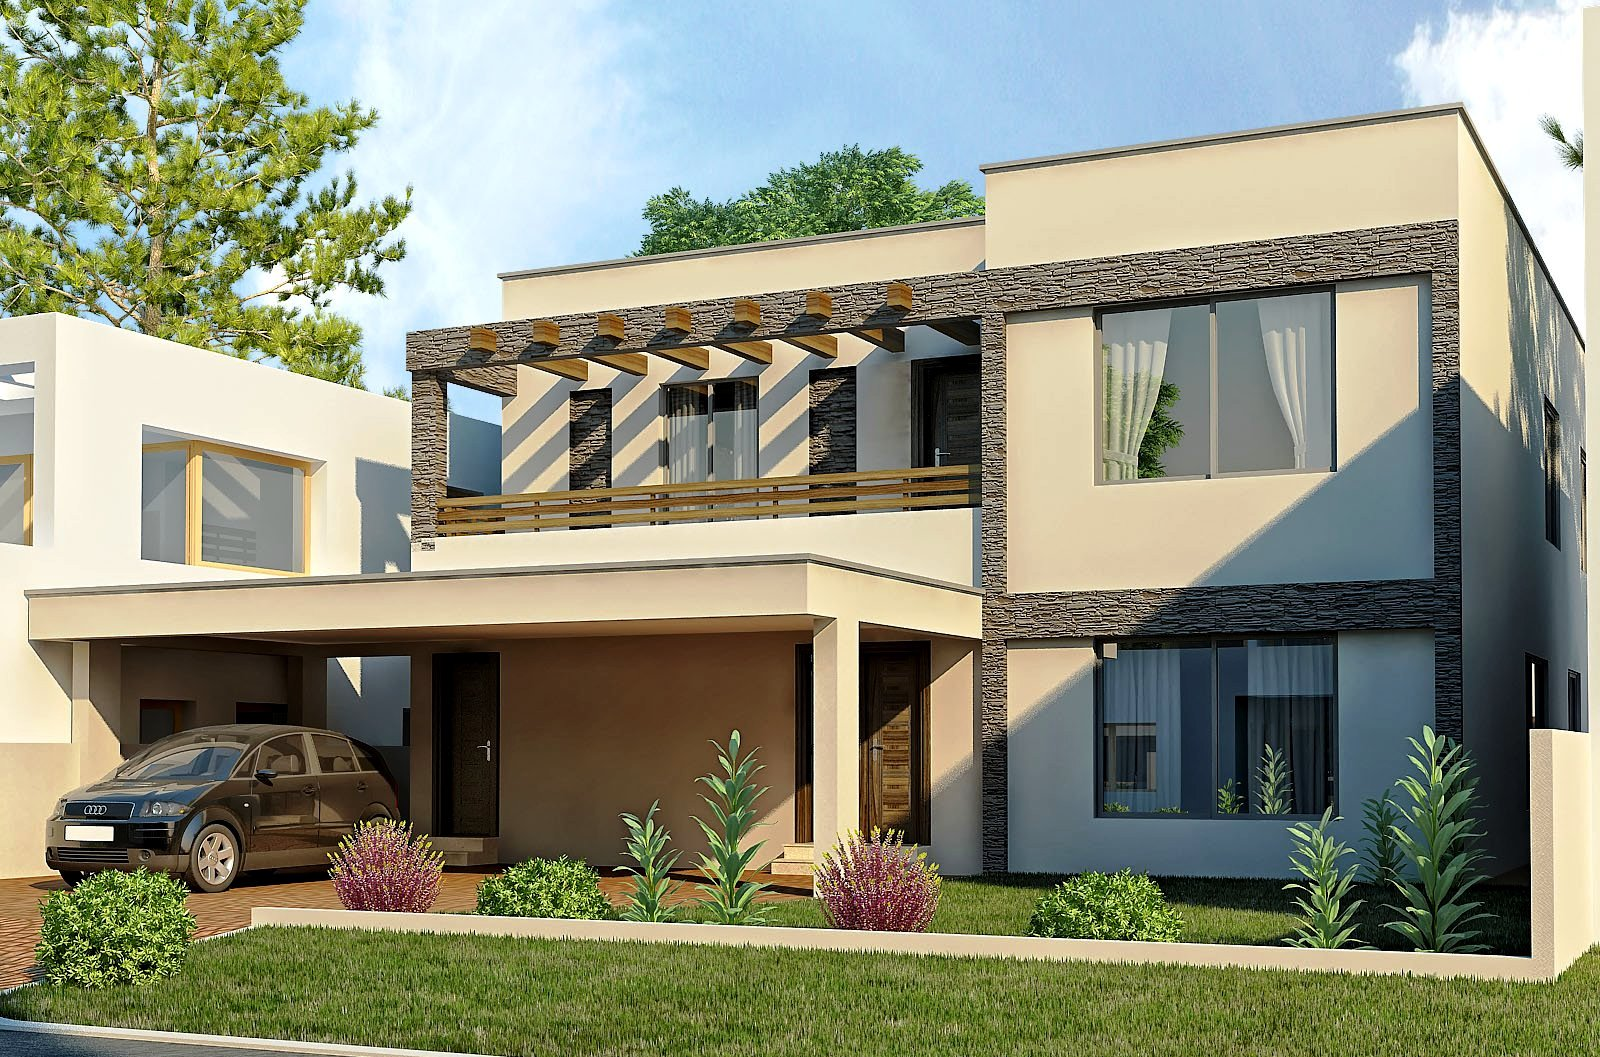 New home designs latest modern homes exterior designs views Latest home design